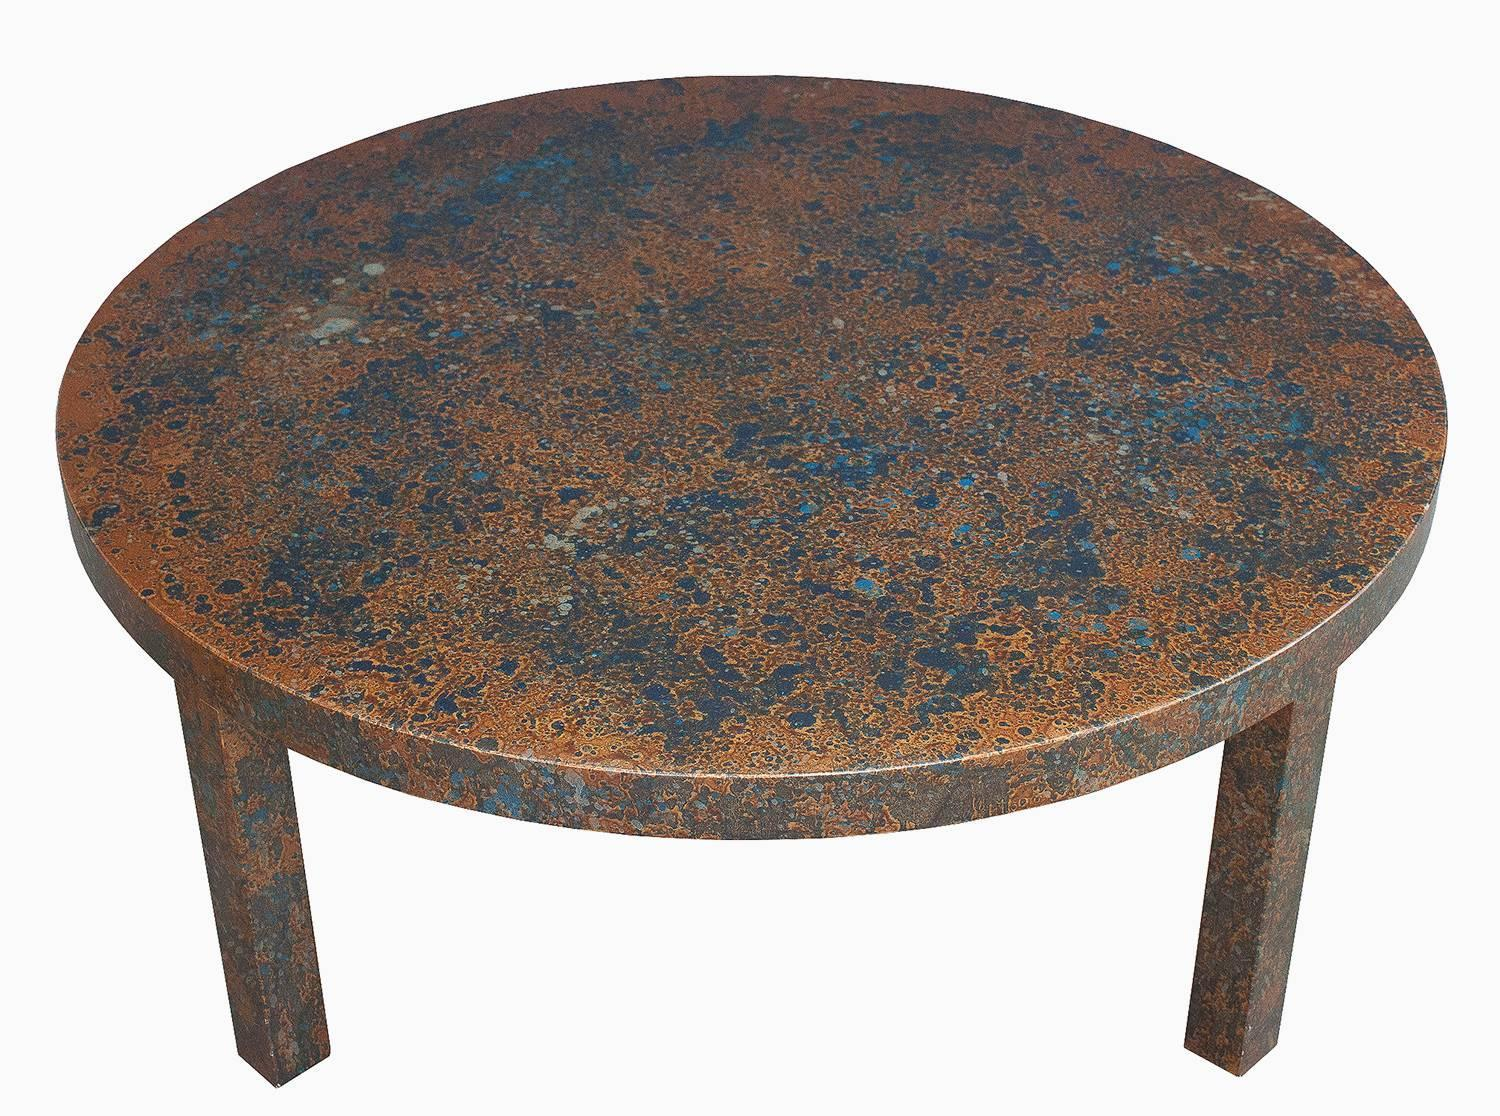 Round Coffee Table In Metallic And Blue Oil Drop Finish At 1stdibs